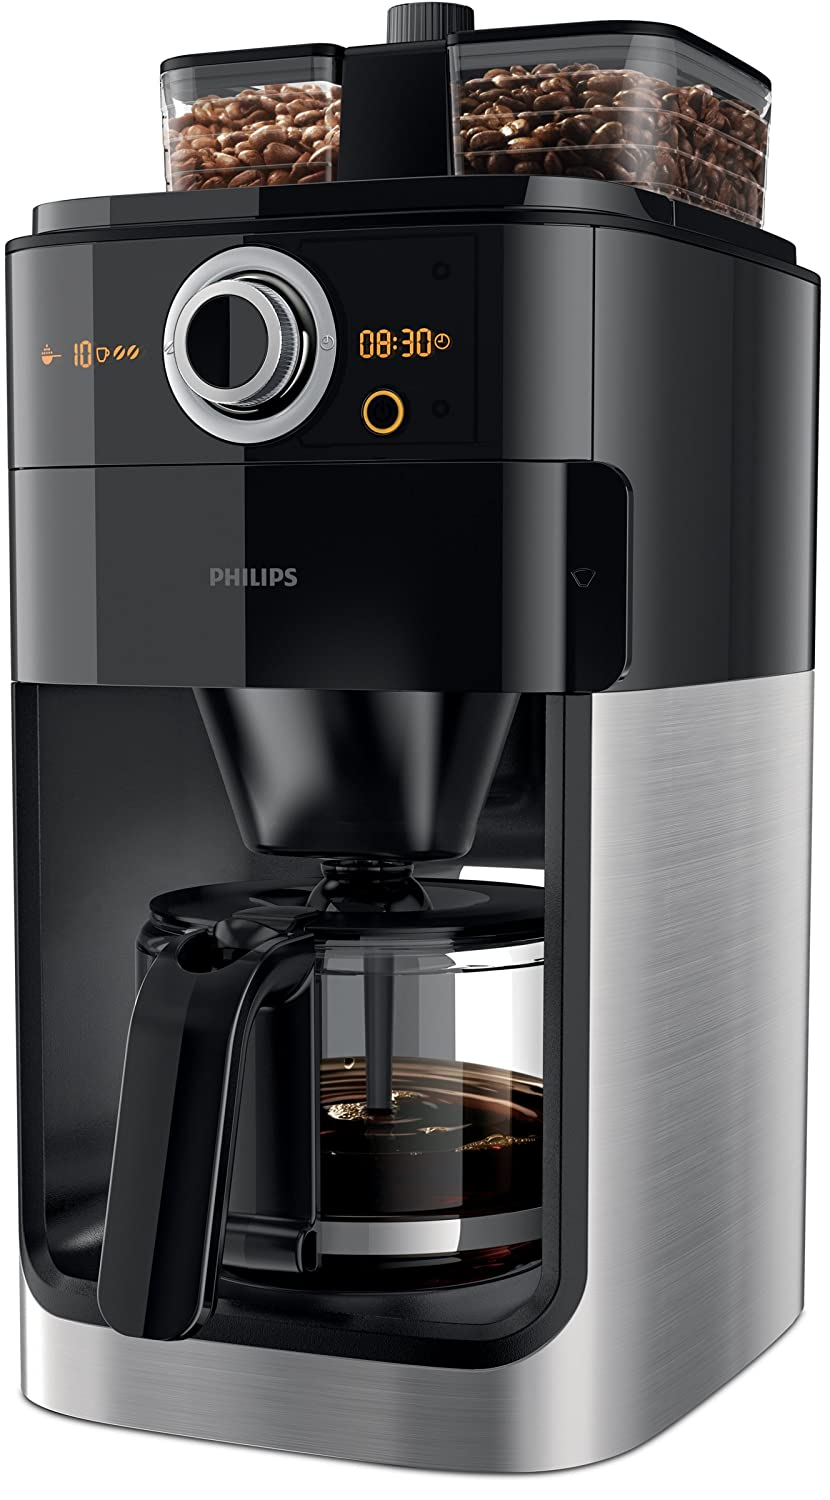 Philips Grind & Brew HD7766 - coffee makers (Freestanding, Ground coffee, Coffee beans, Coffee, Black, Stainless steel, Plastic, Stainless steel, LCD) HD7766/00